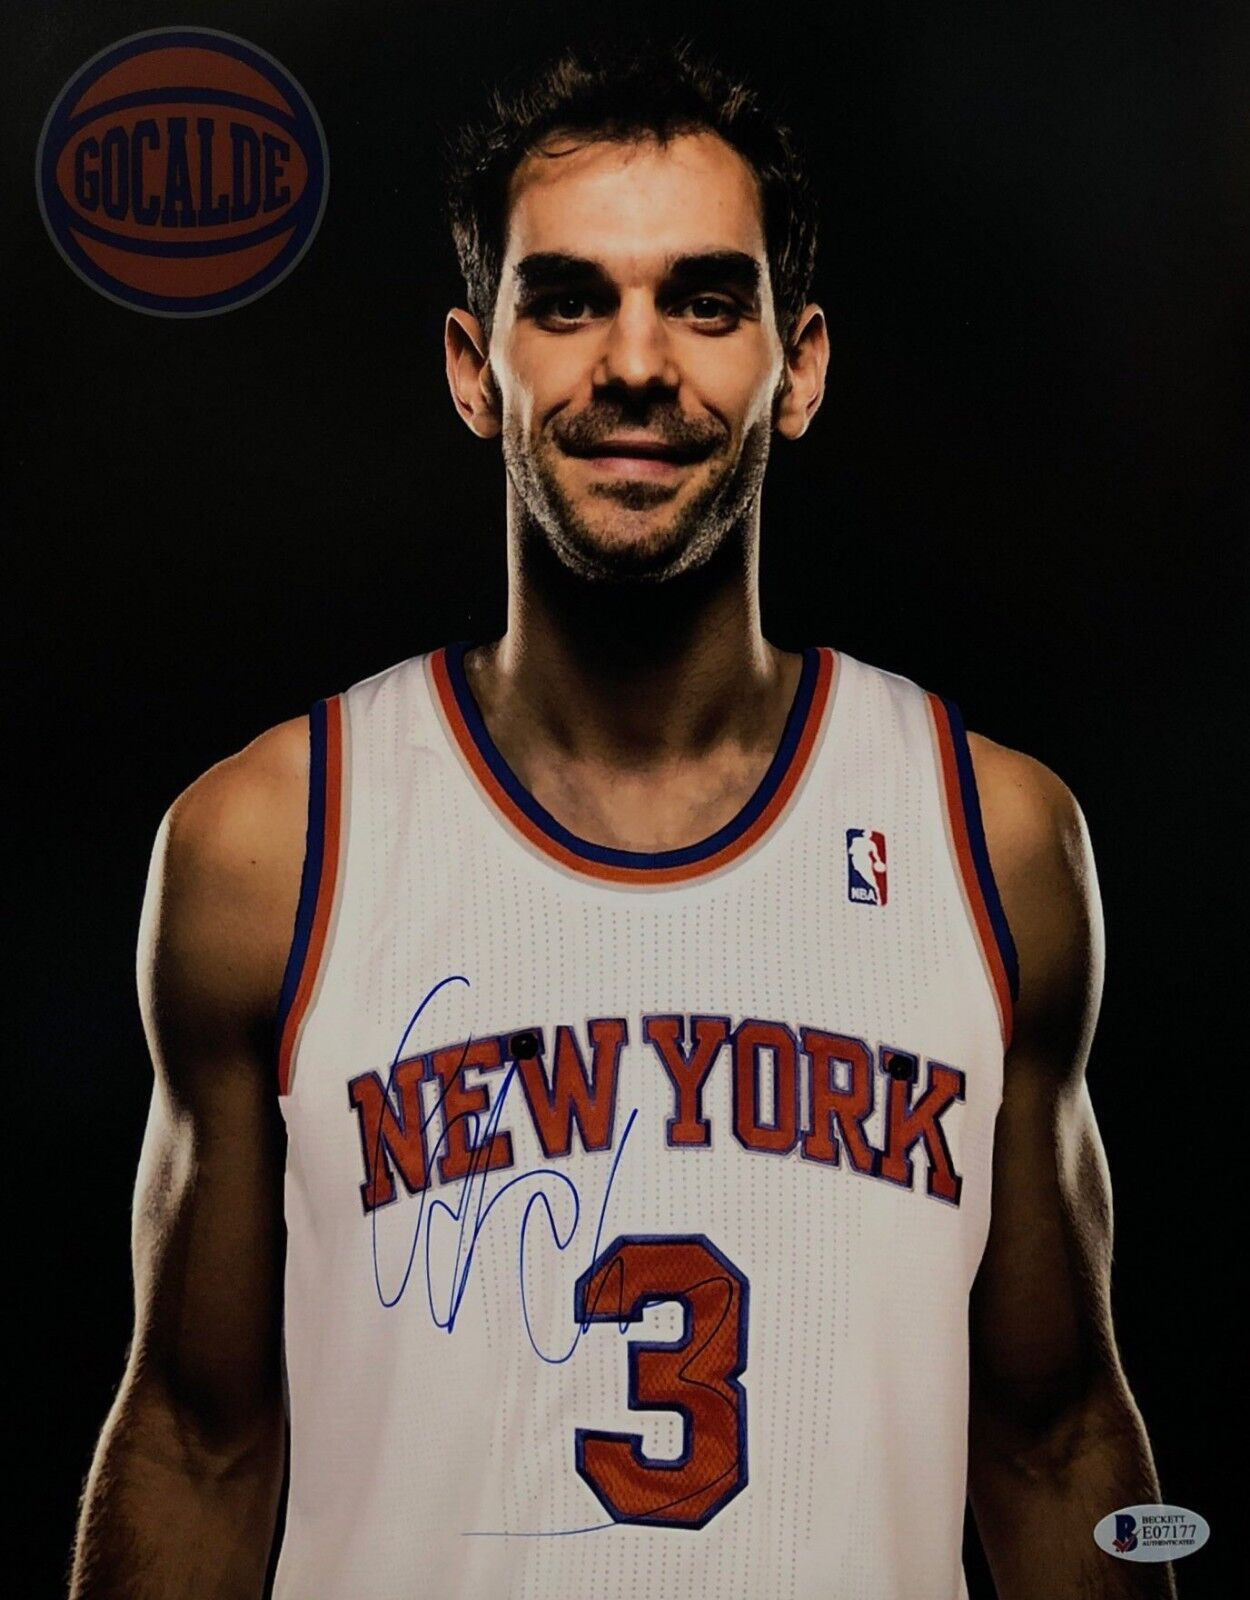 Jose Calderon Signed New York Knicks 11x14 Basketball Photo Beckett BAS E07177